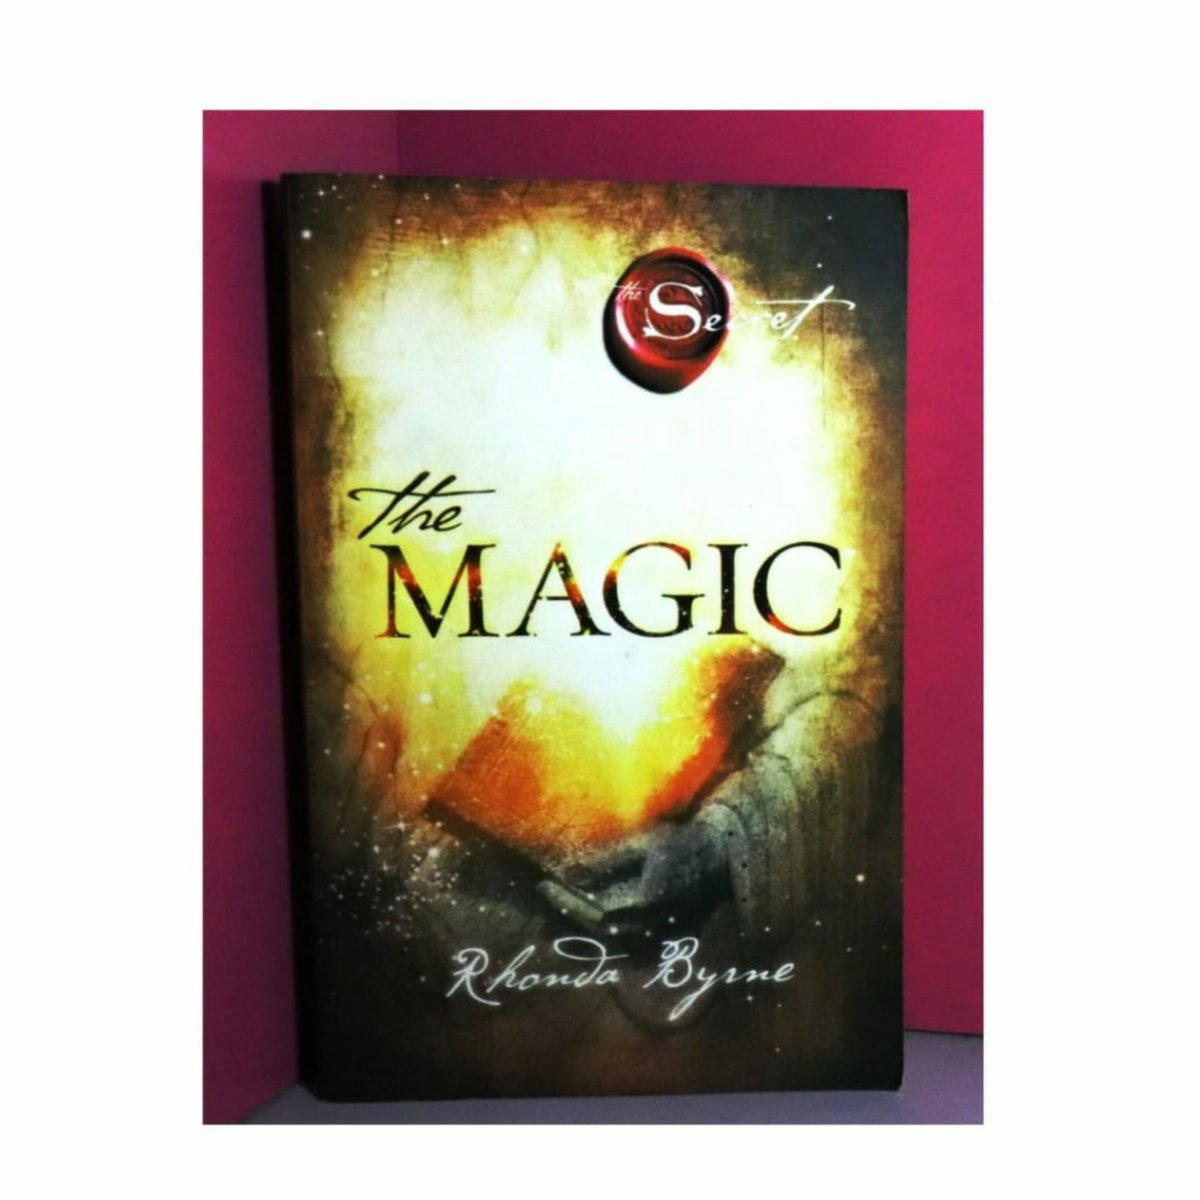 The magic:(The Secret) Author:- Rhonda Byrne RS.276 (Rs.450) save Rs.174(39%). FREE shipping. Get it in 7 days. #thesecret #themagic #bookreaders #motivationalbooks #success #rhondabyrne<br>http://pic.twitter.com/ZdoTcYIG6w